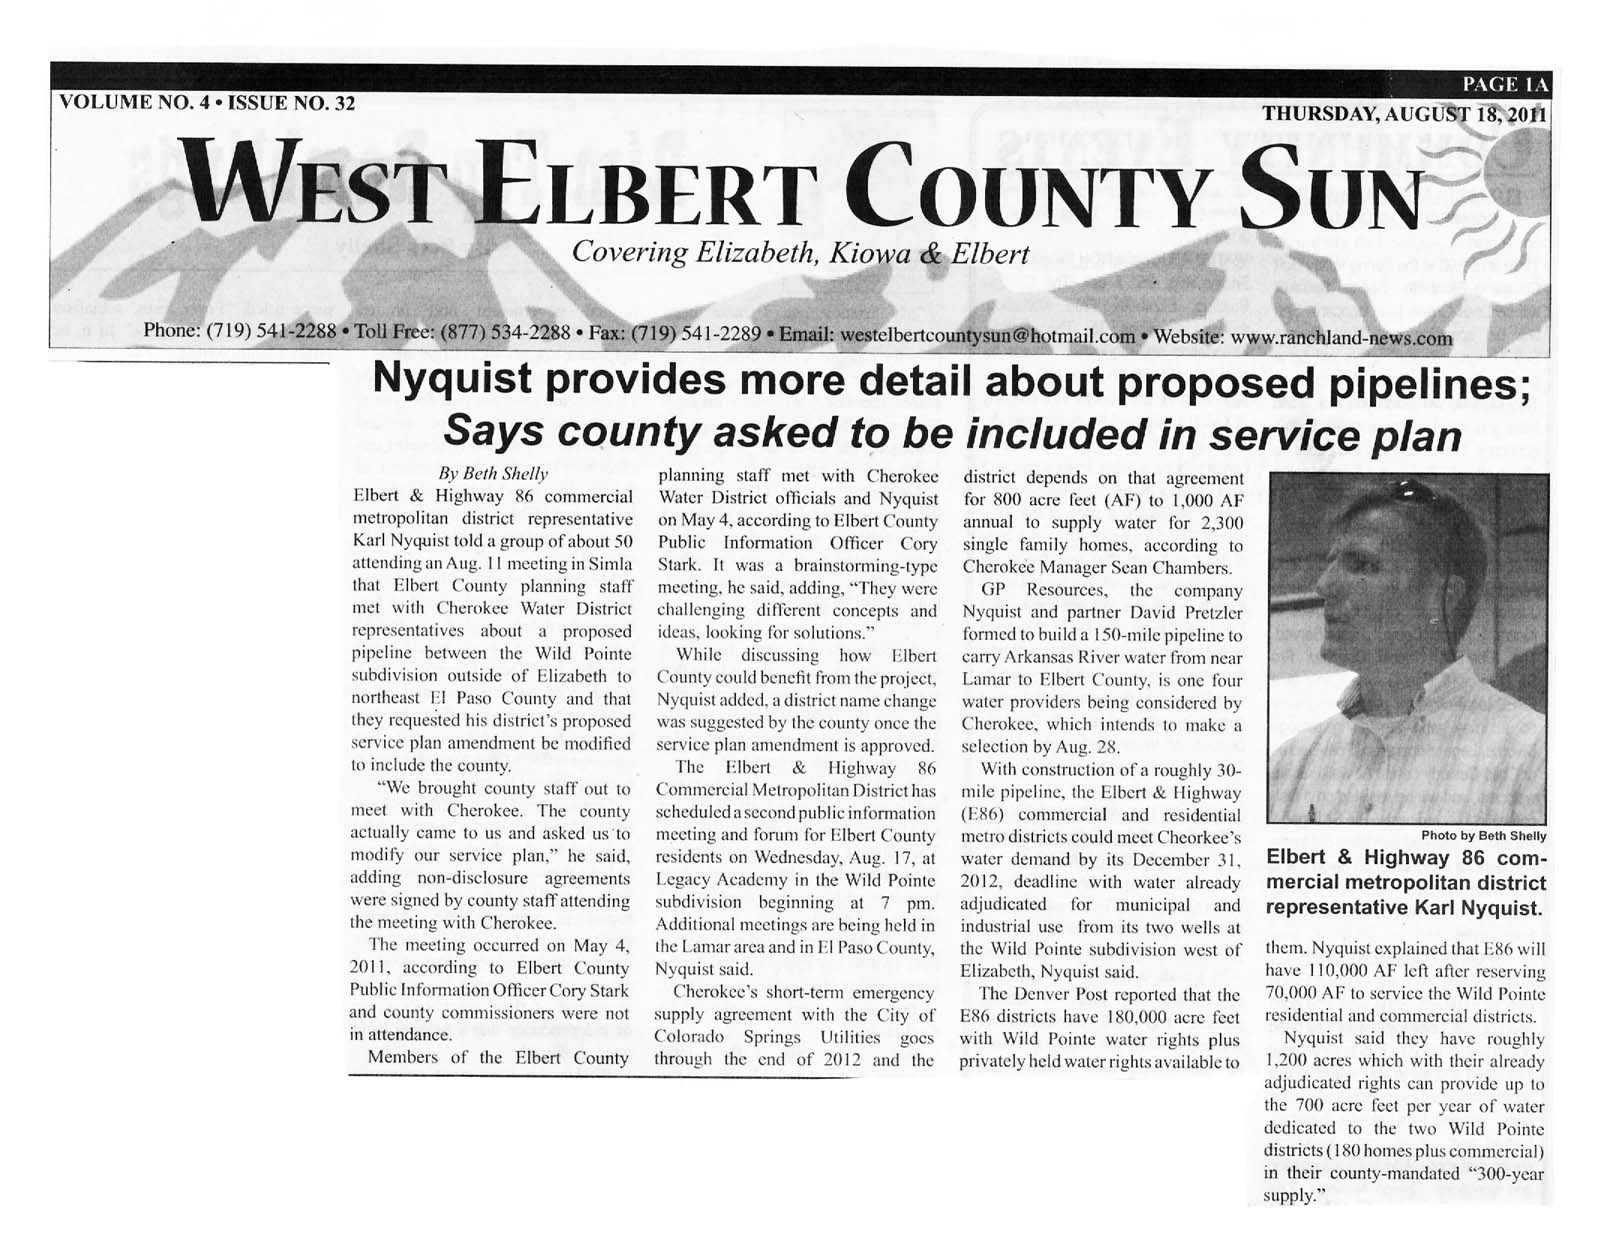 West Elbert County Sun 8-18-22 - Beth Shelly reporting